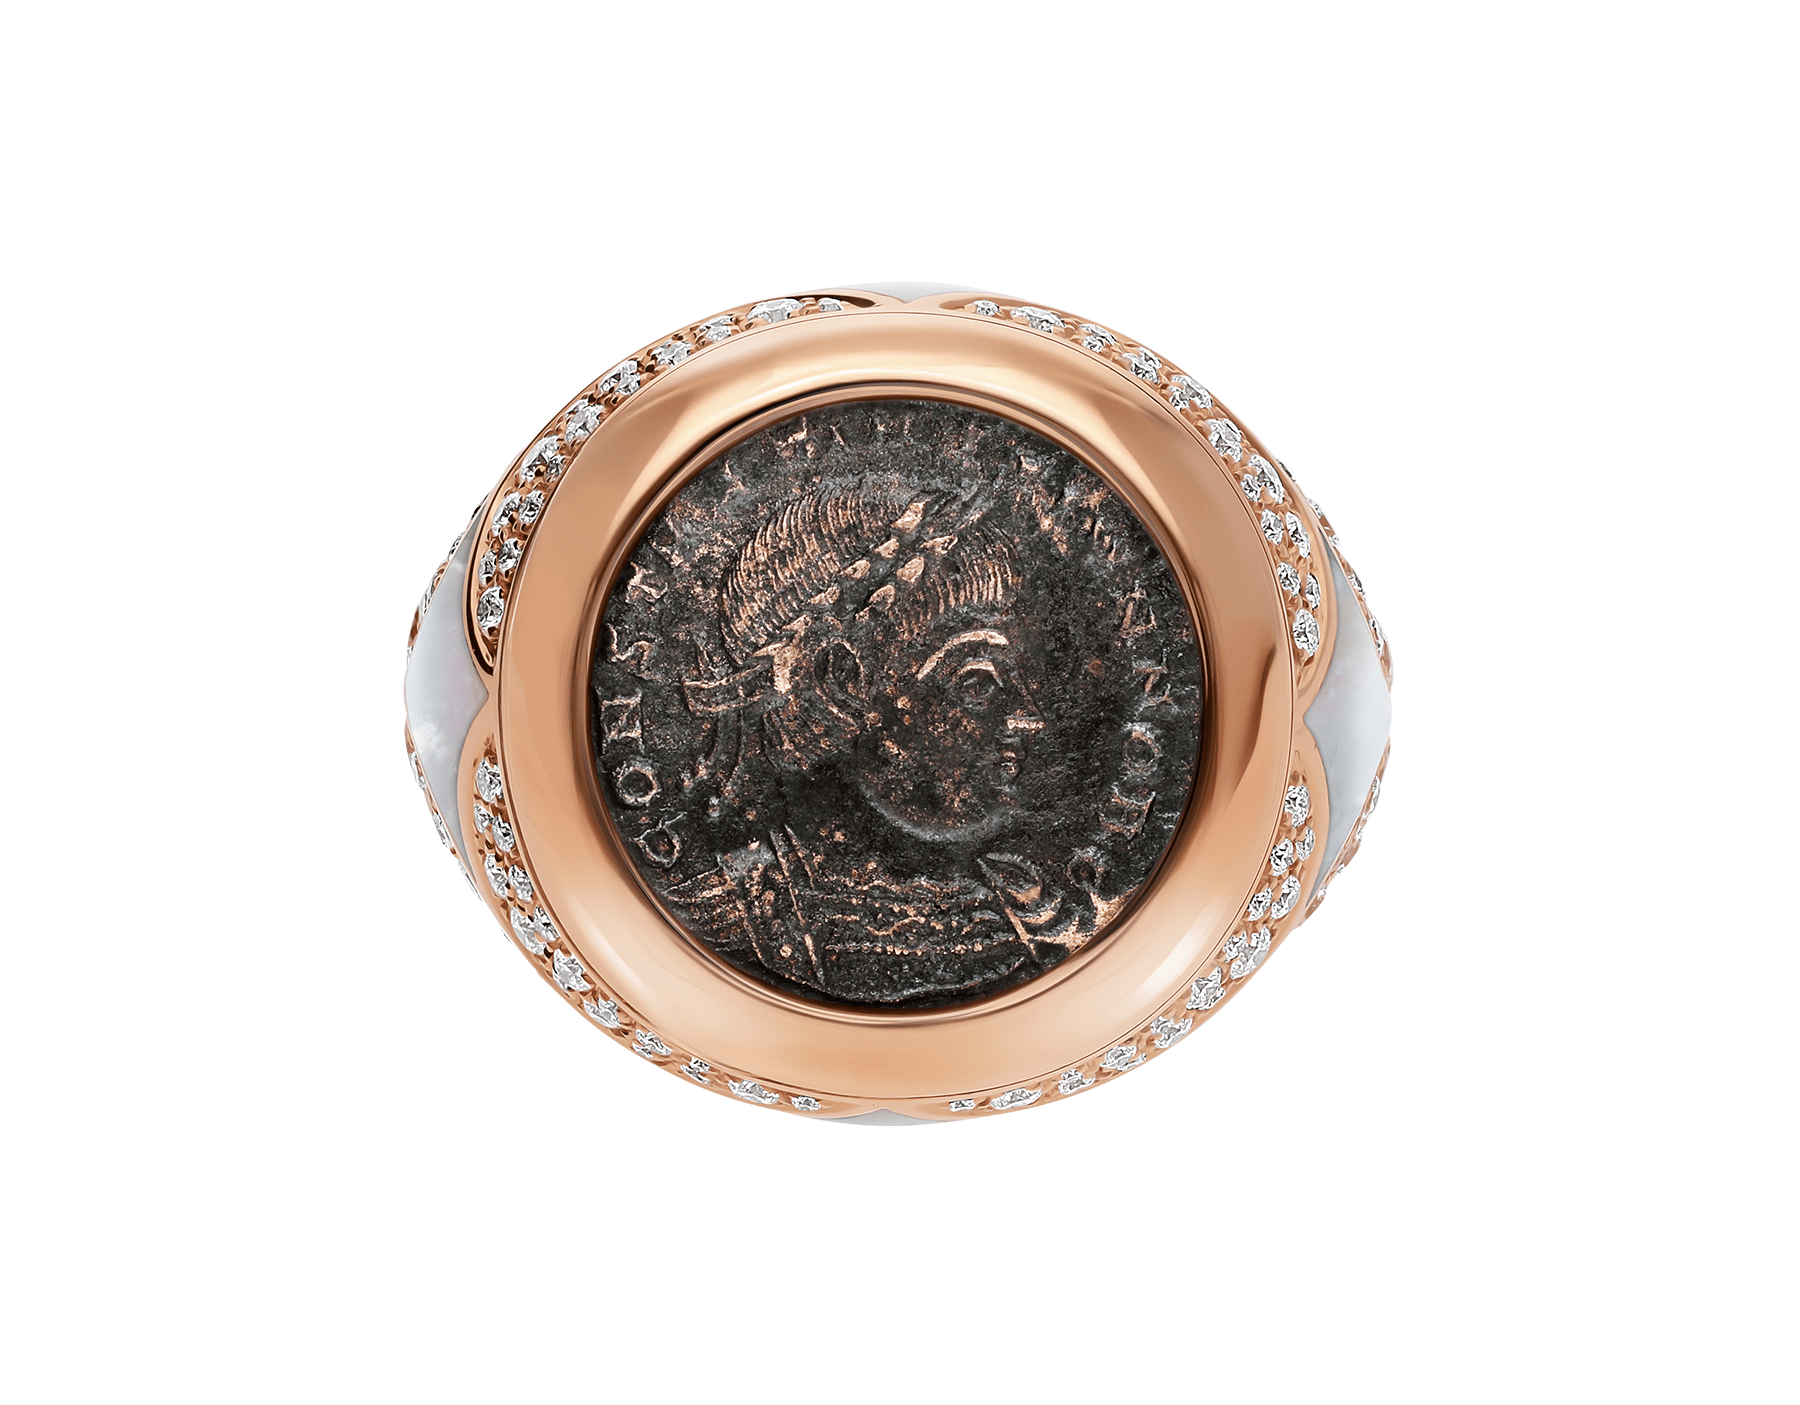 Monete 18 kt rose gold ring set with an ancient coin, mother-of-pearl elements and pavé diamonds AN858424 image 3